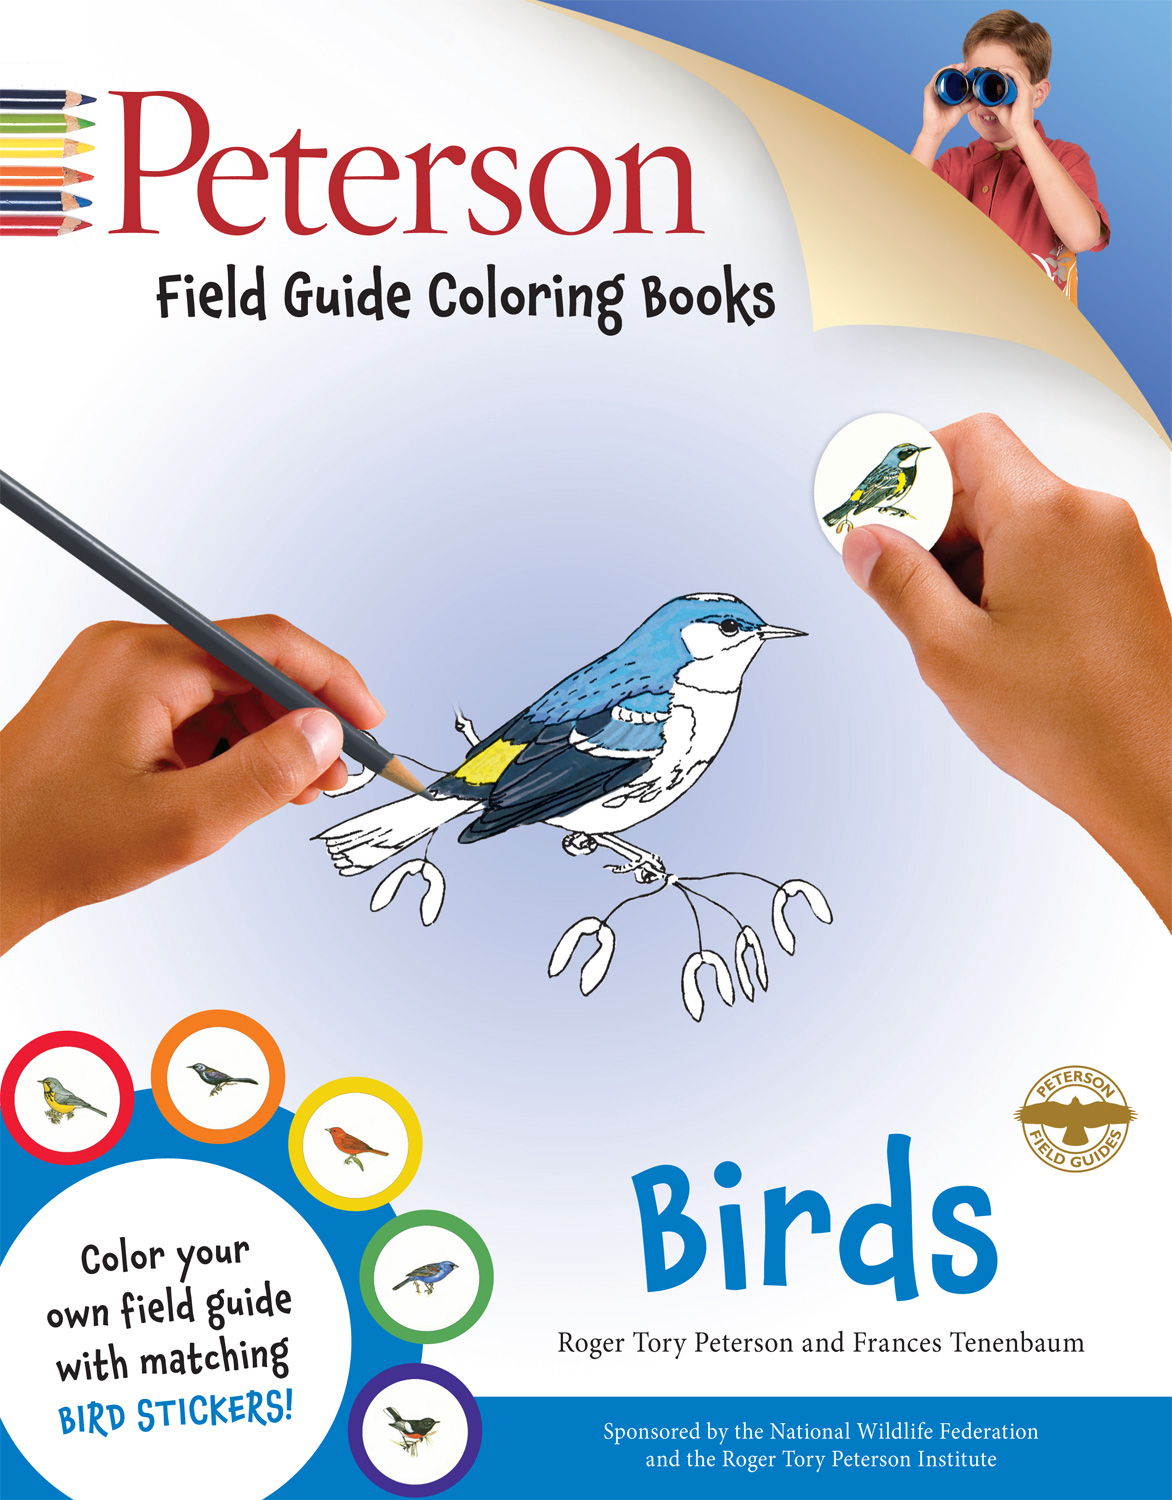 Peterson Field Guide Coloring Books: Birds-9780544026926